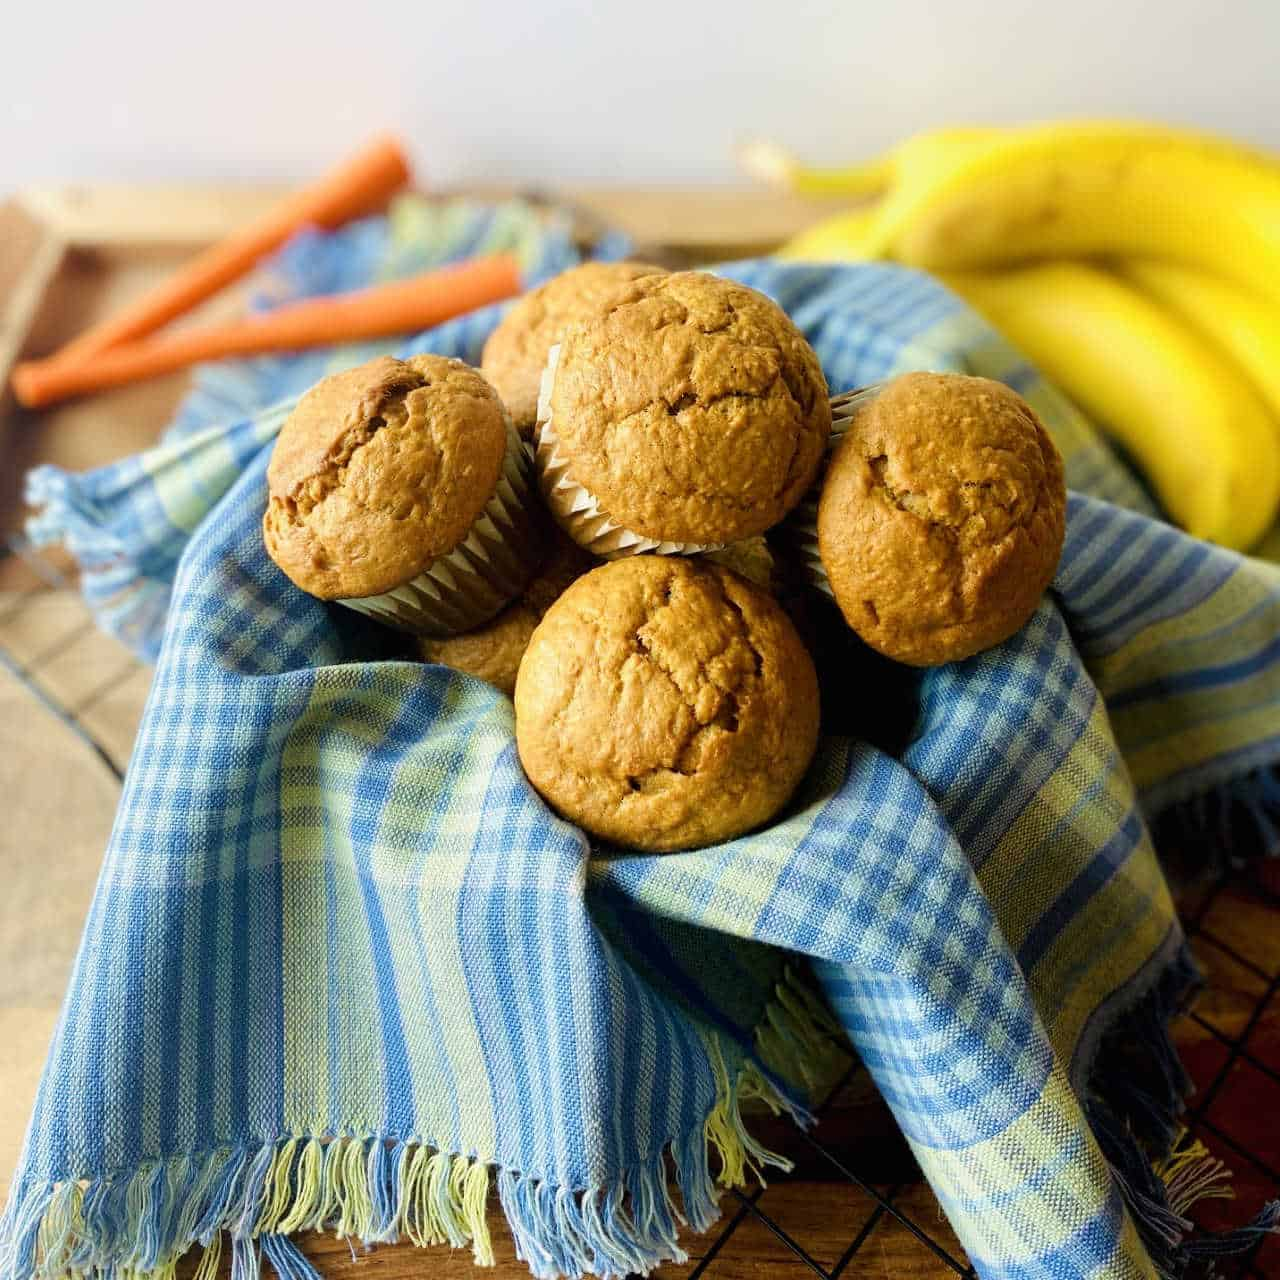 banana carrot muffins in basket with carrot and banana in background 2 1